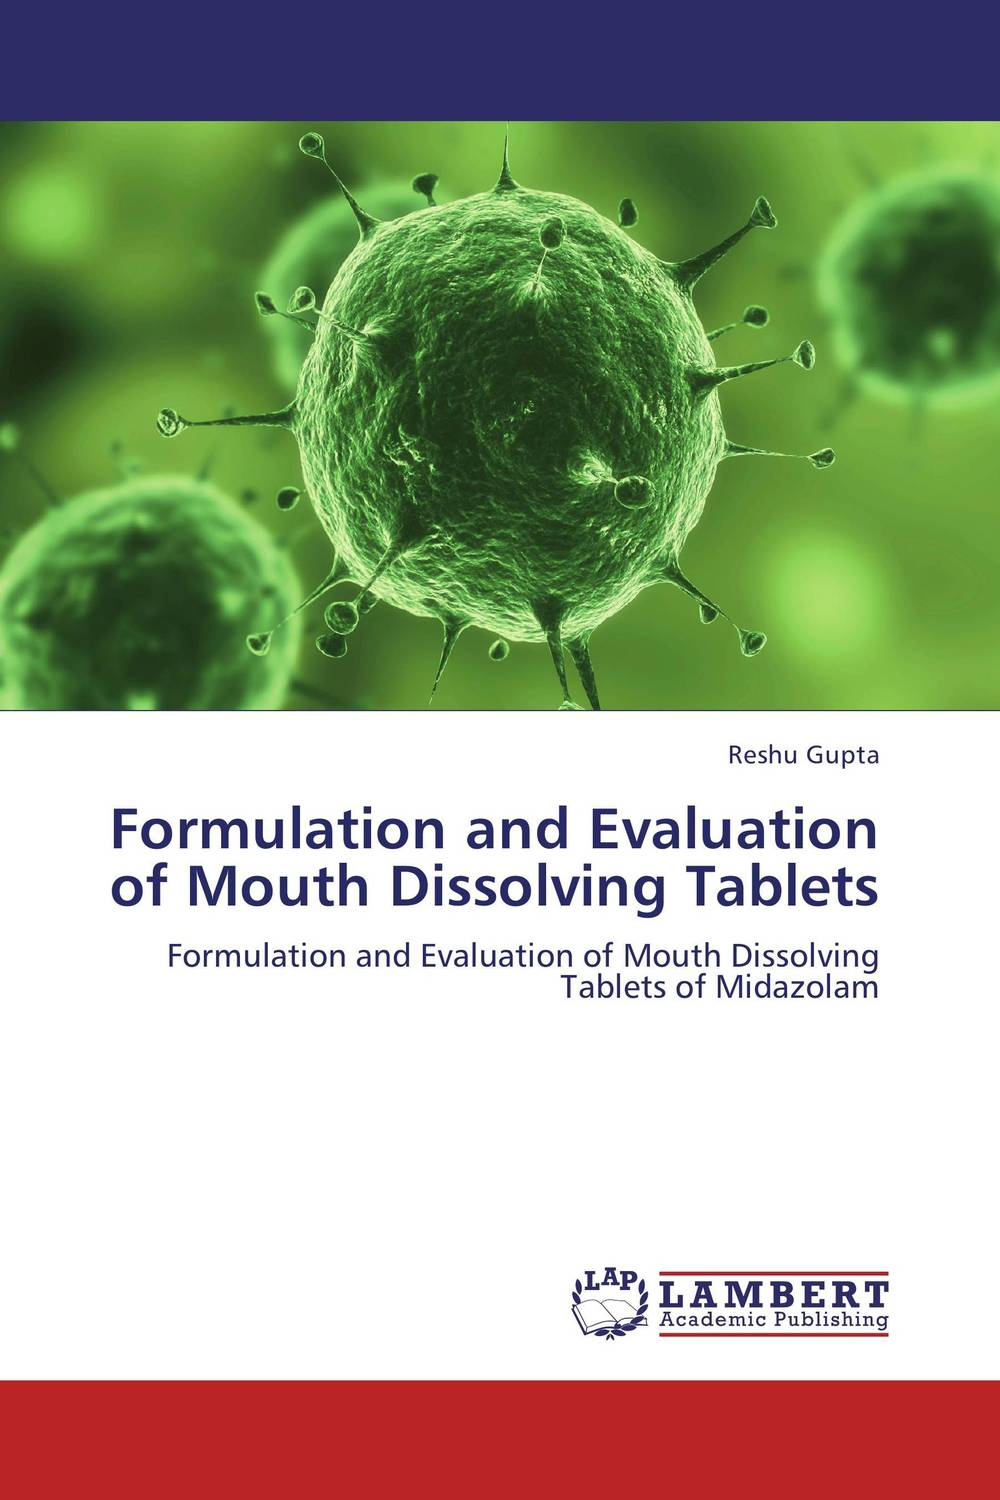 Formulation and Evaluation of Mouth Dissolving Tablets the role of evaluation as a mechanism for advancing principal practice